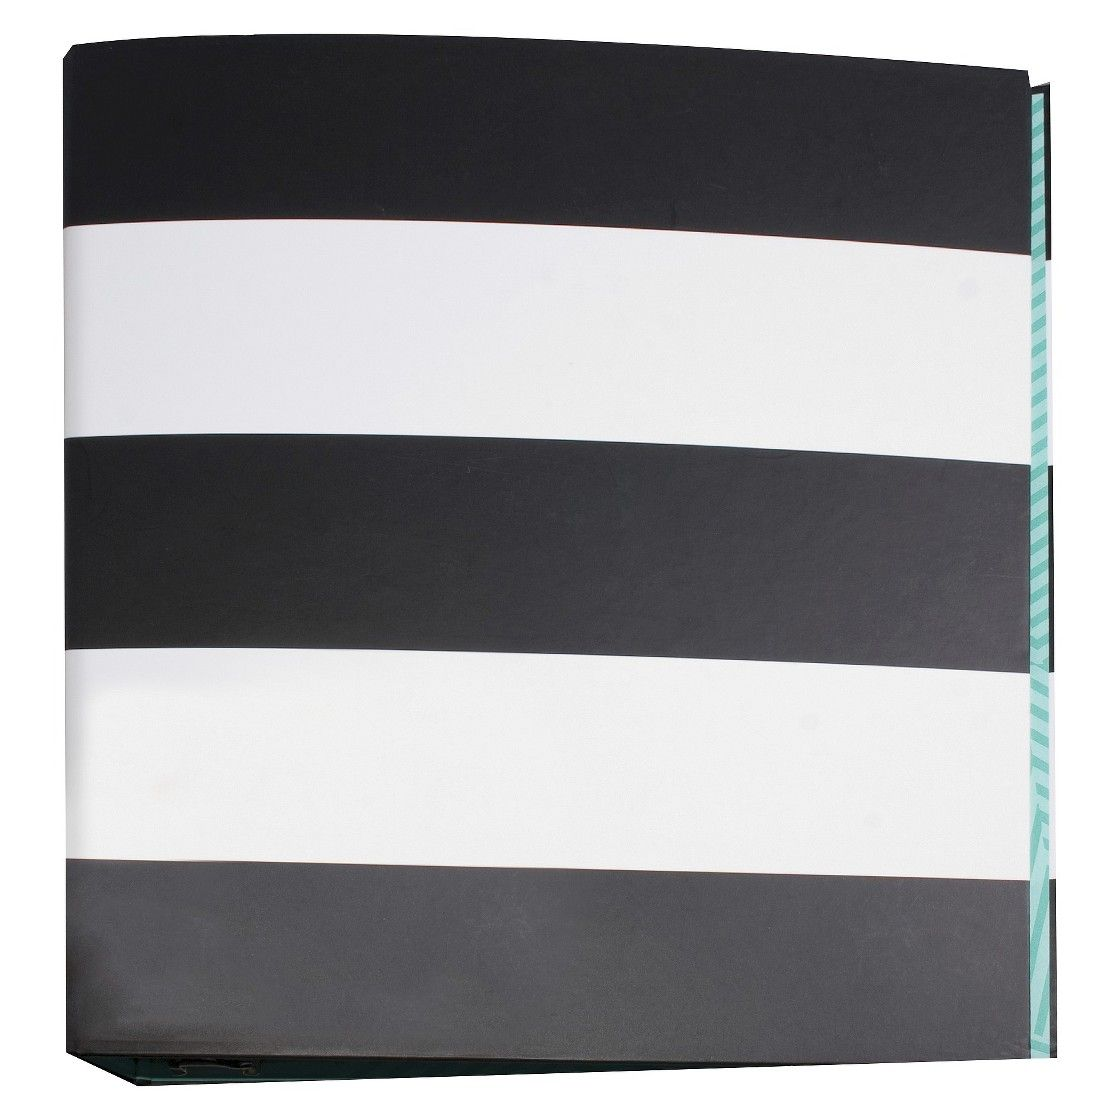 Room Essentials 1.5in Black And White 3-Ring Binder (With